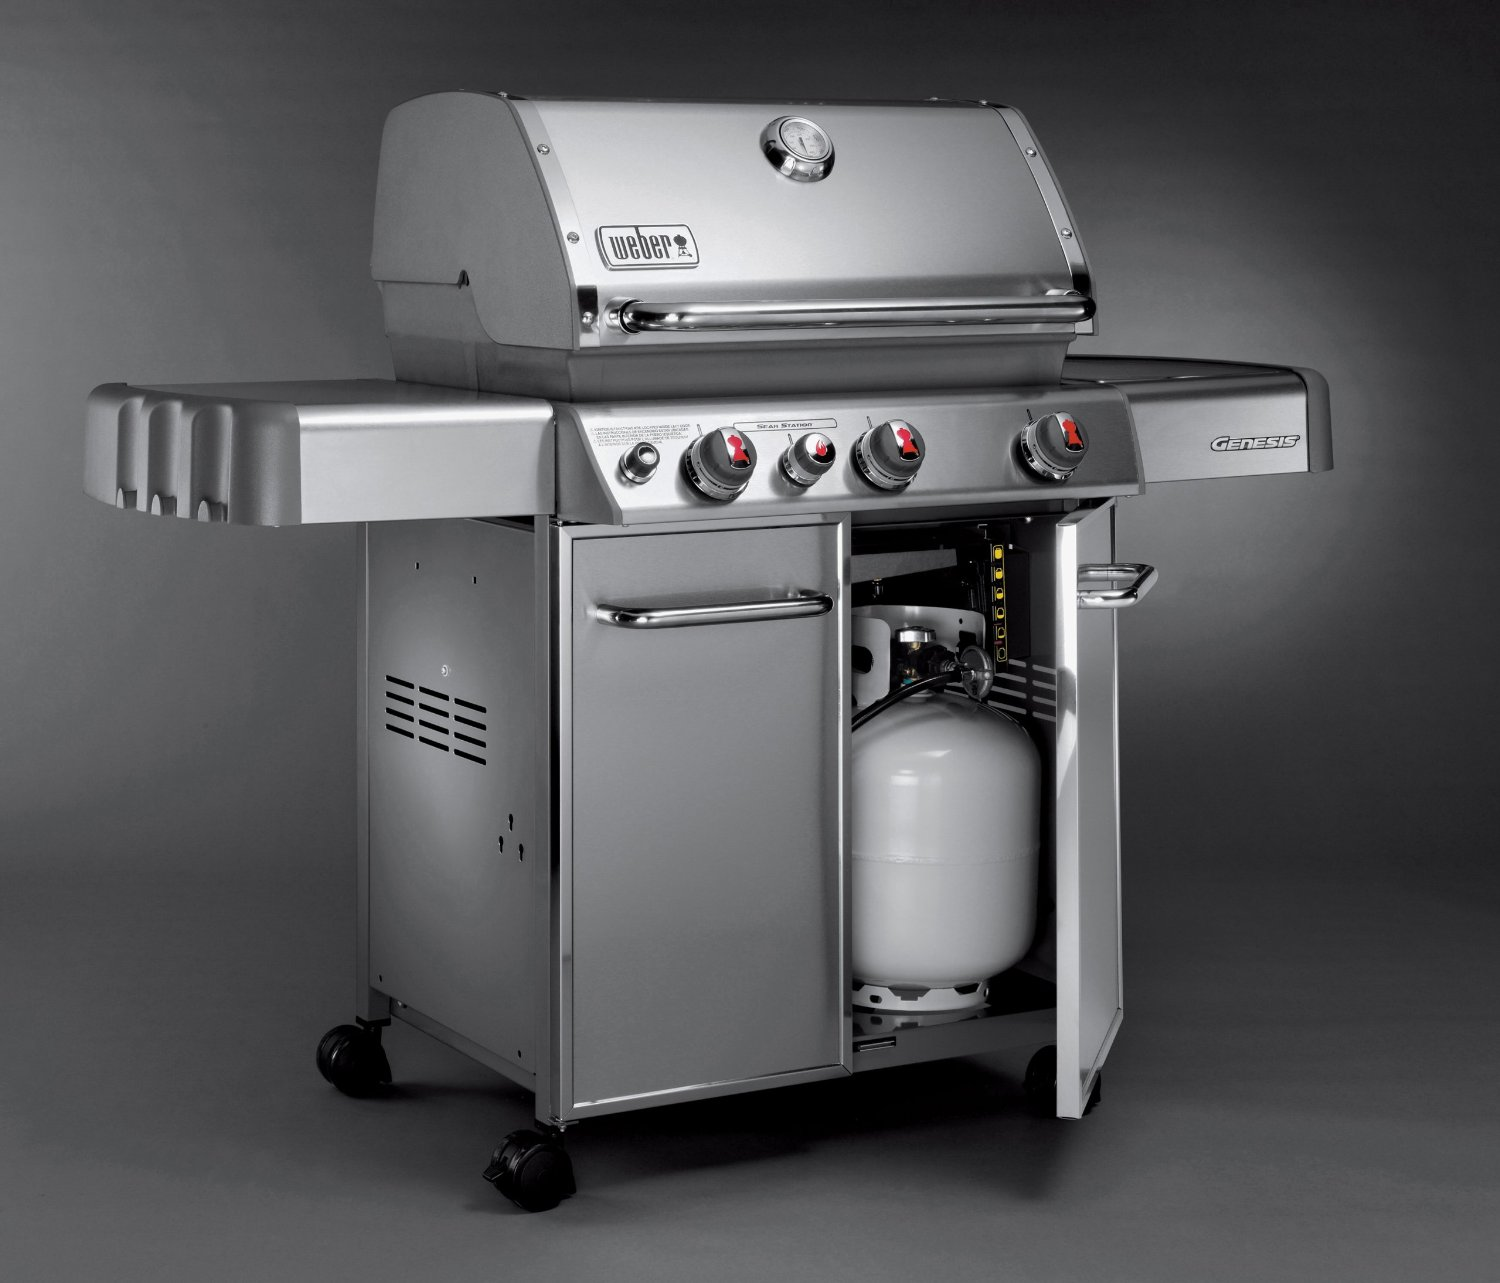 weber genesis s330 bbq in stainless steel. Black Bedroom Furniture Sets. Home Design Ideas